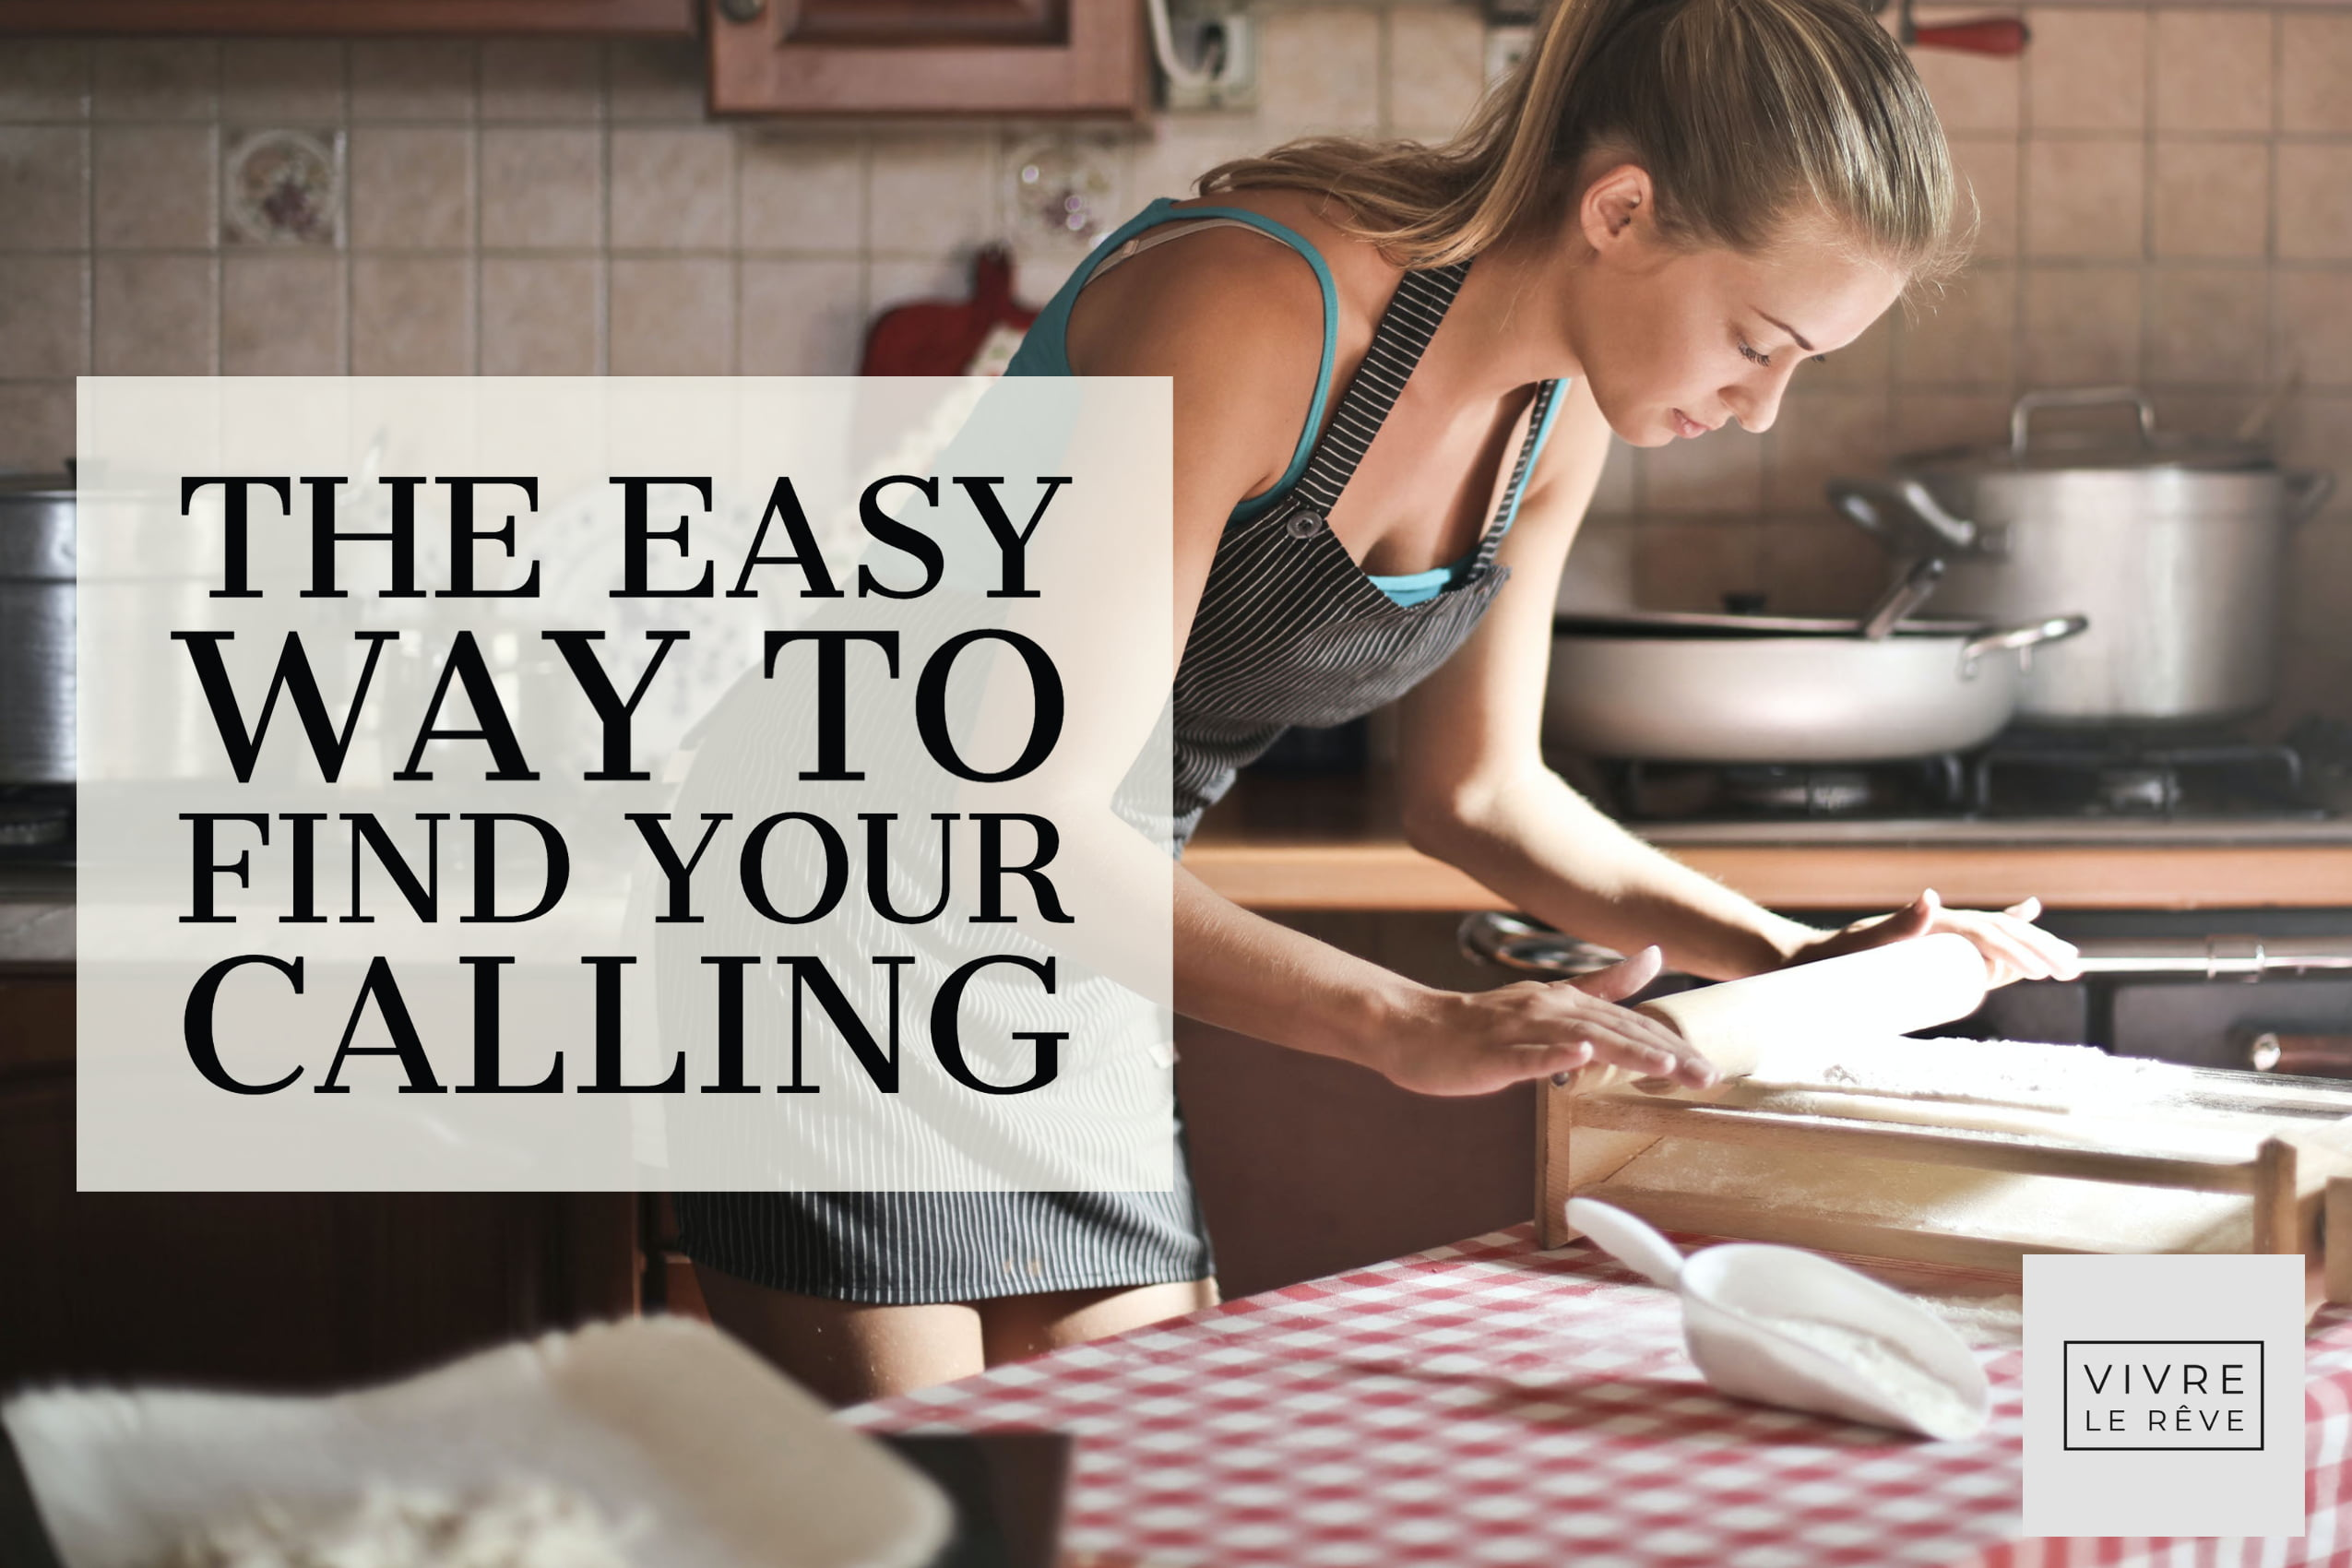 The Easy Way to Find Your Calling